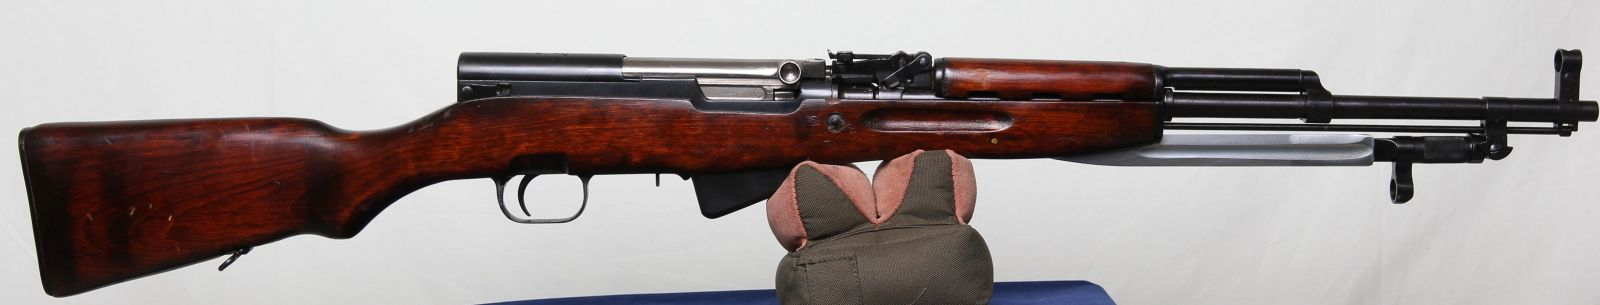 SKS Rifle Review | The Hunting Gear Guy